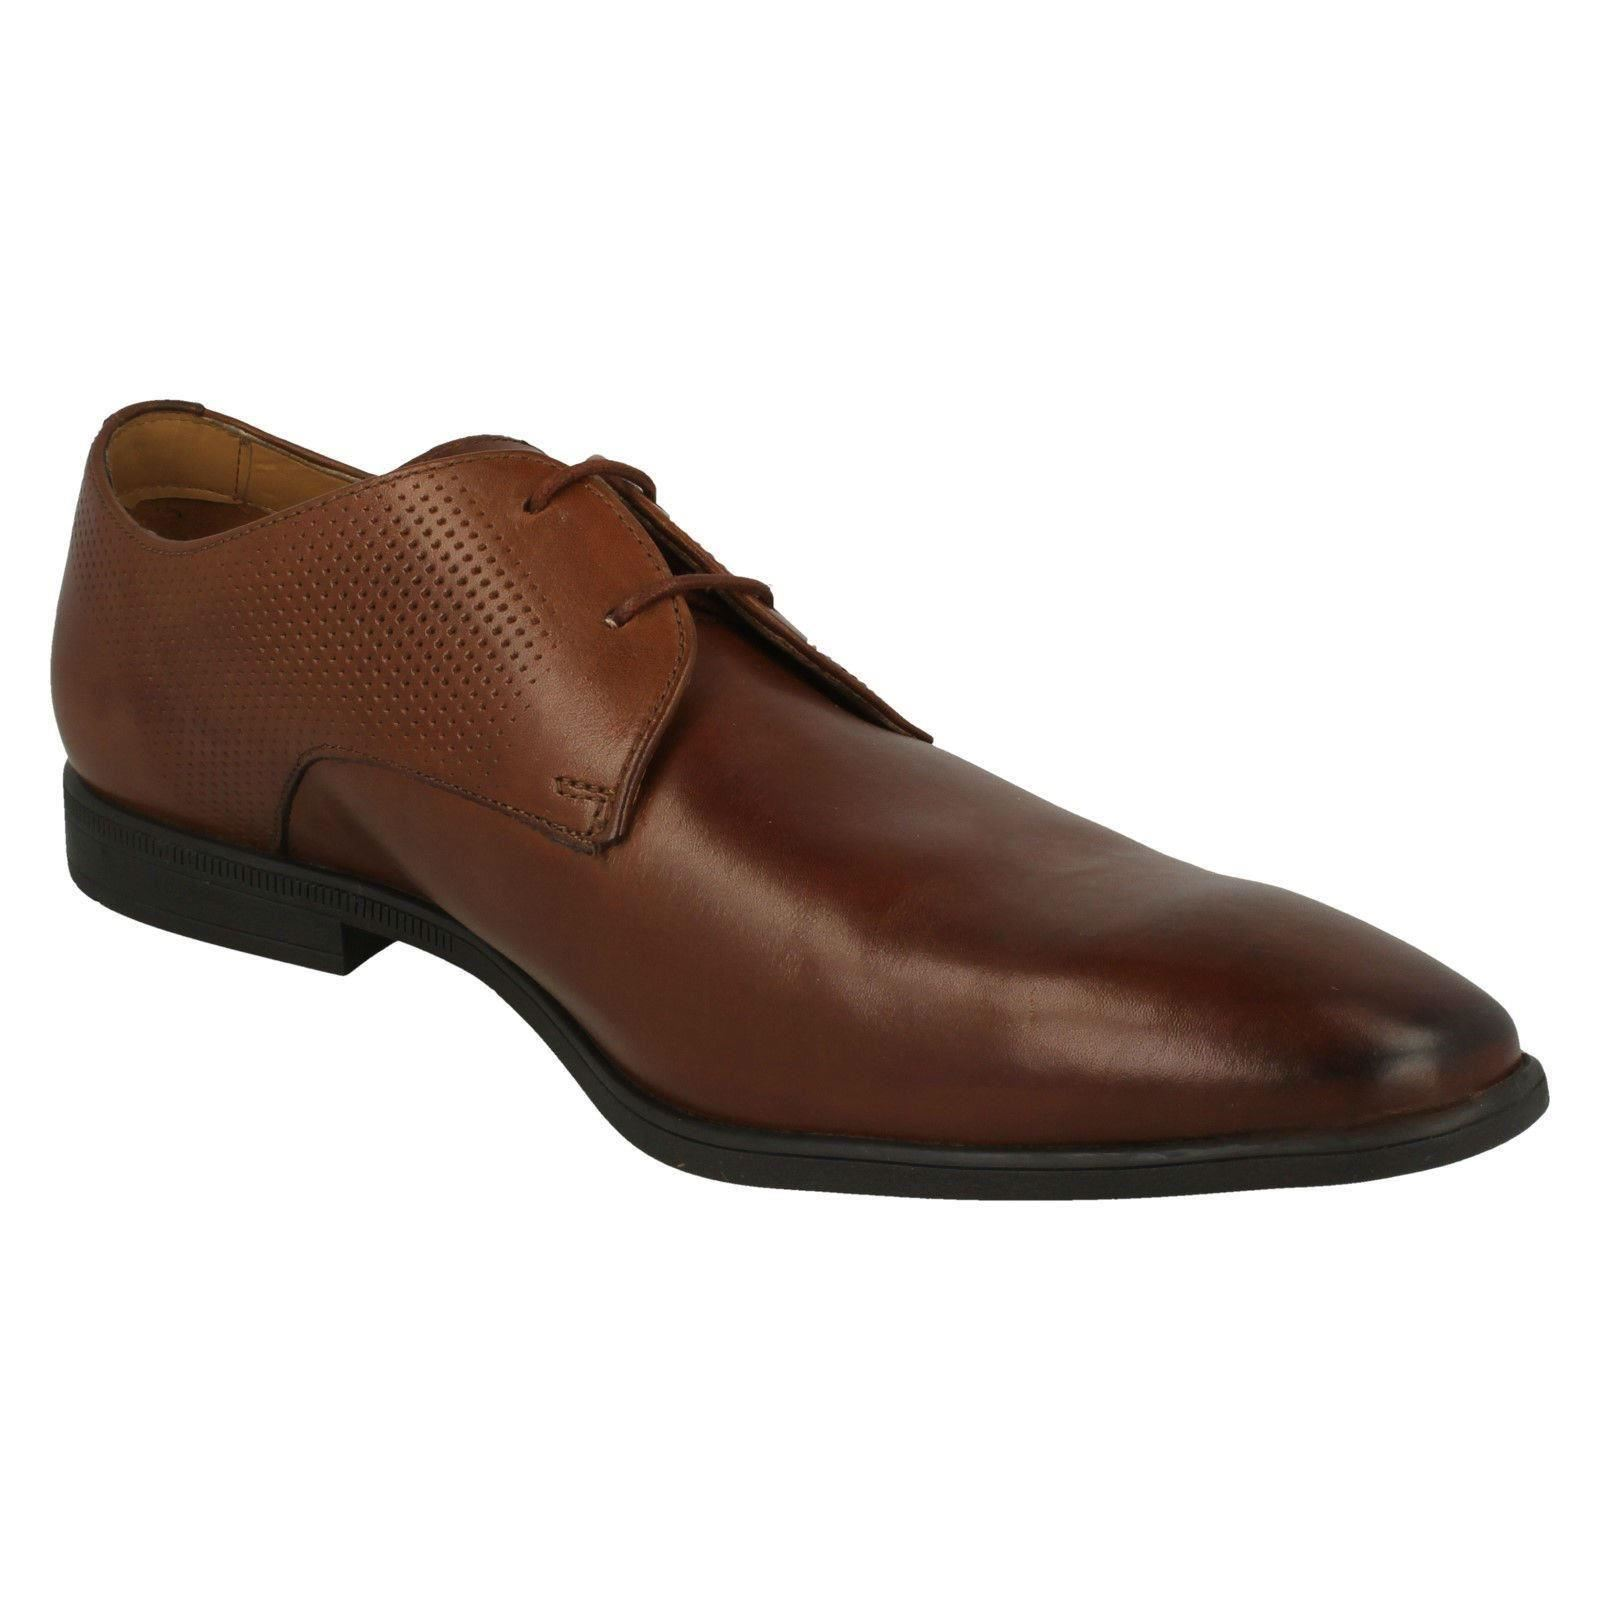 Herren  Herren  Clarks Leder Lace Up Formal Smart Schuhes Style - Bampton Walk a2a5f8